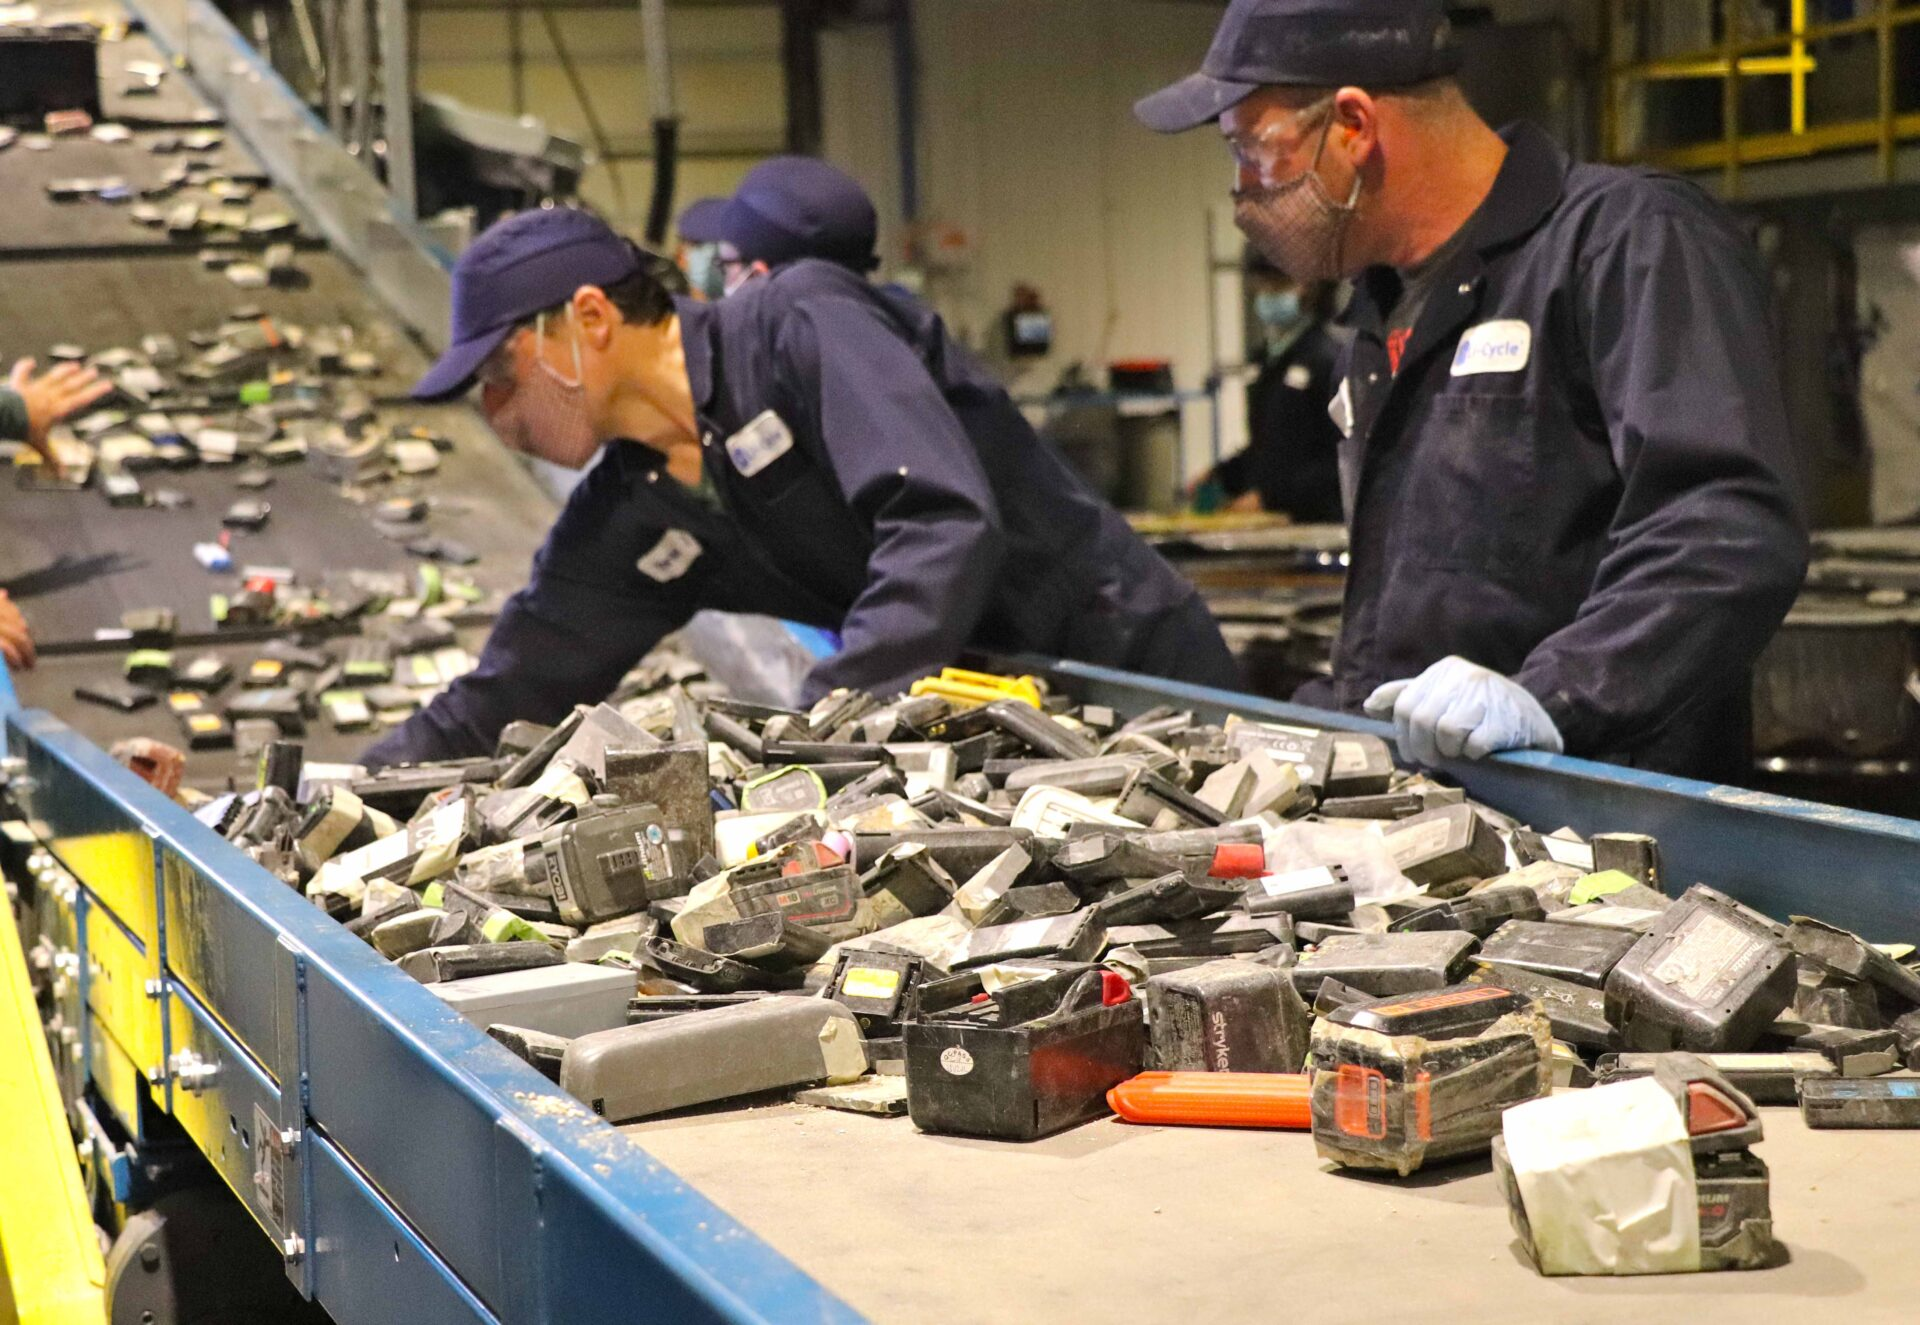 Lithium-ion batteries being fed to the shredder 1